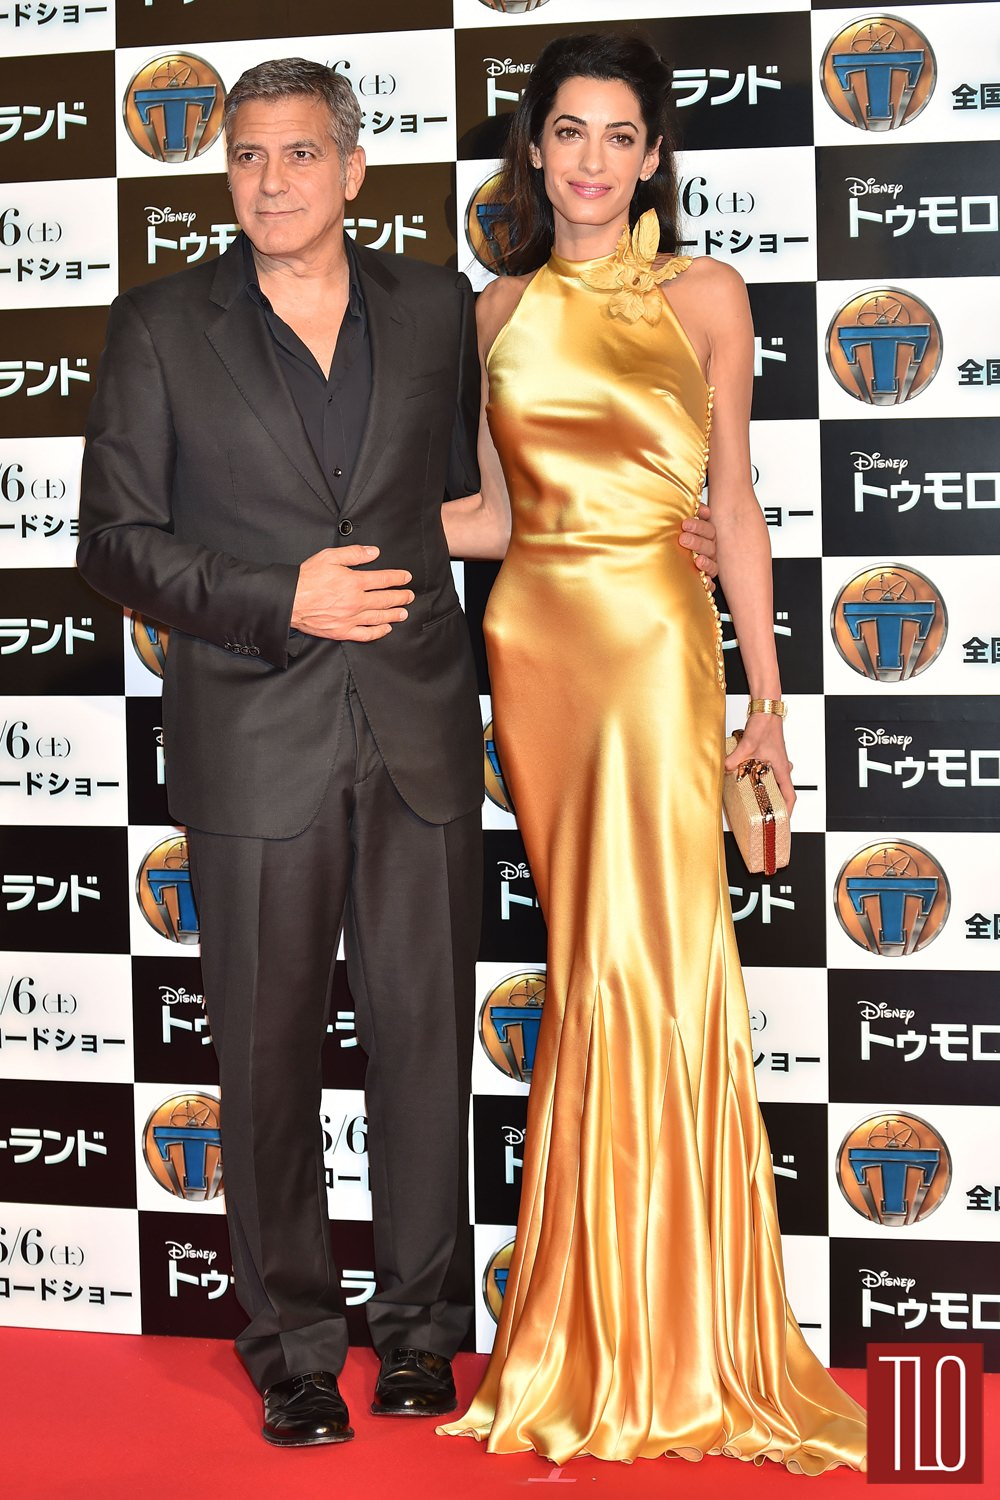 George-Clooney-Amal-Clooney-Tomorrowland-Tokyo-Premiere-Red-Carpet-Fashion-Maison-Margiela-Tom-Lorenzo-Site-TLO (1)